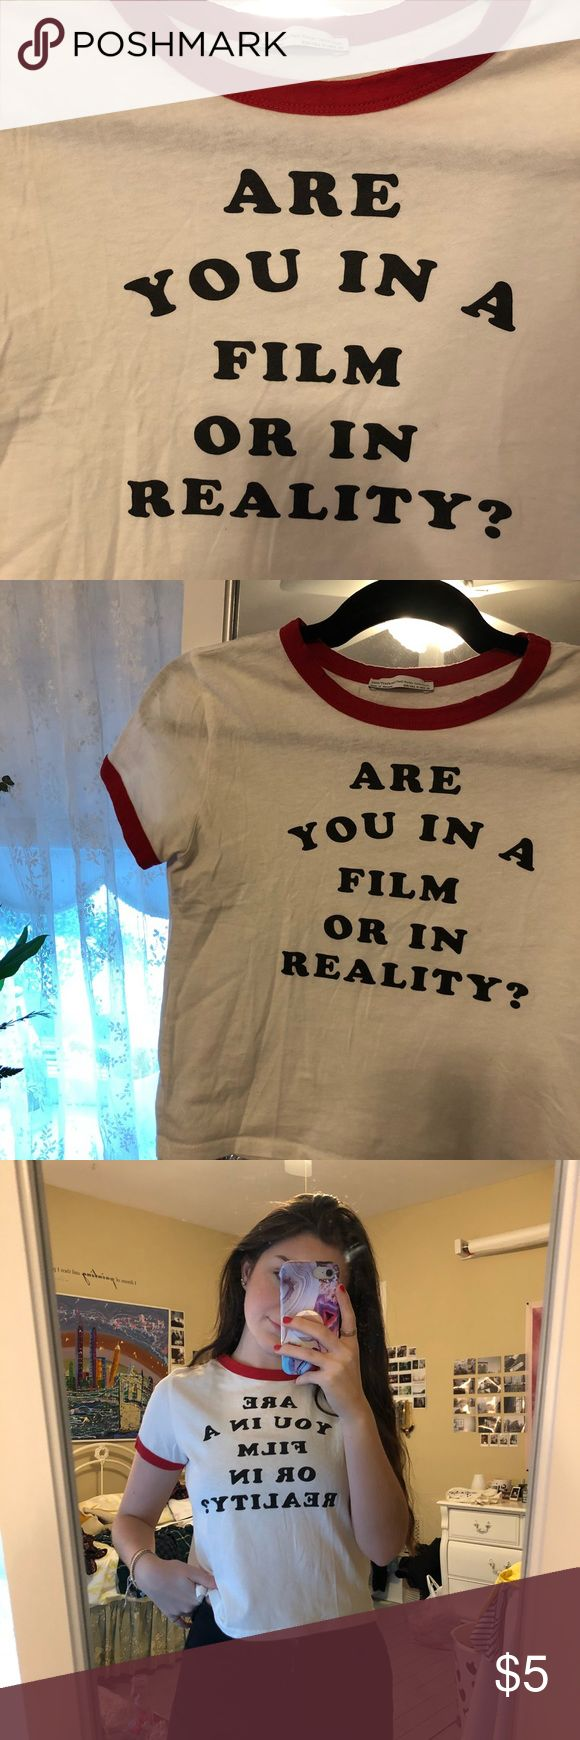 "Zara Tshirt ""ARE YOU IN A FILM OR IN REALITY"" tshirt from zara. Red outline detail with black lettering. Only worn once. Labeled as US medium but fits like a small. Zara Tops Tees - Short Sleeve"